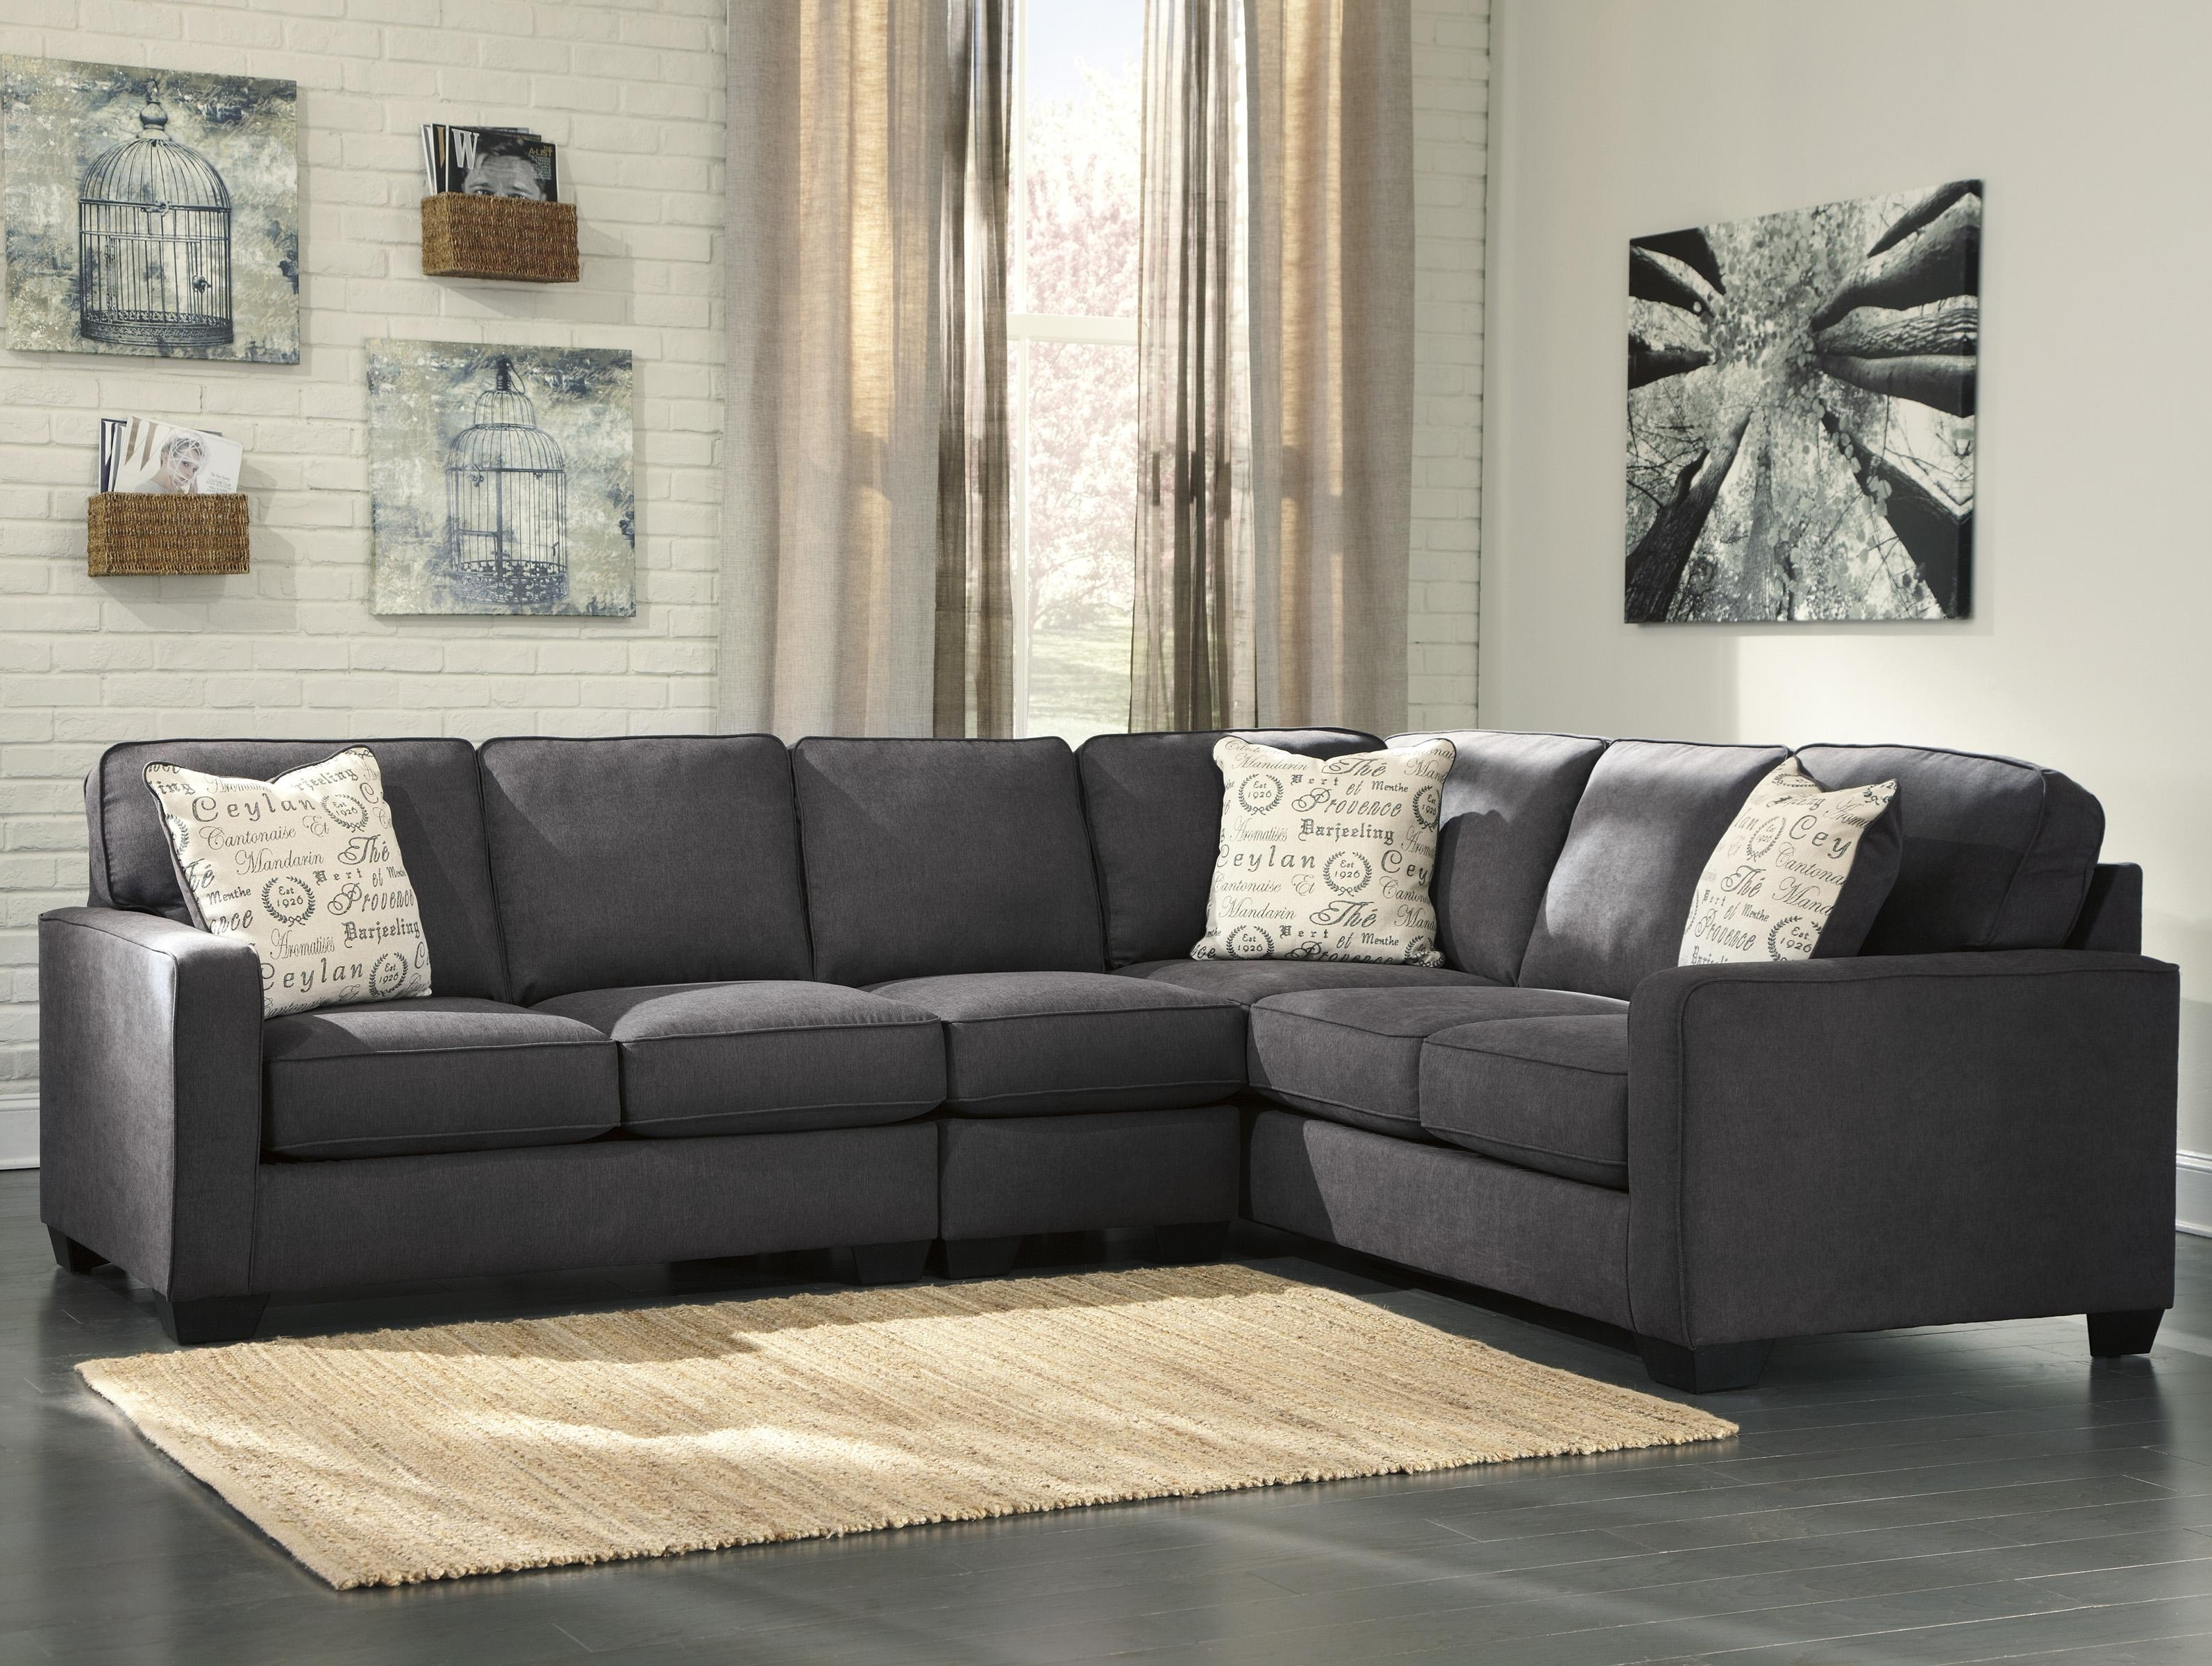 Ashley Signature Design Alenya – Charcoal 3 Piece Sectional With In Well Known Sectional Sofas At Ashley Furniture (View 7 of 15)